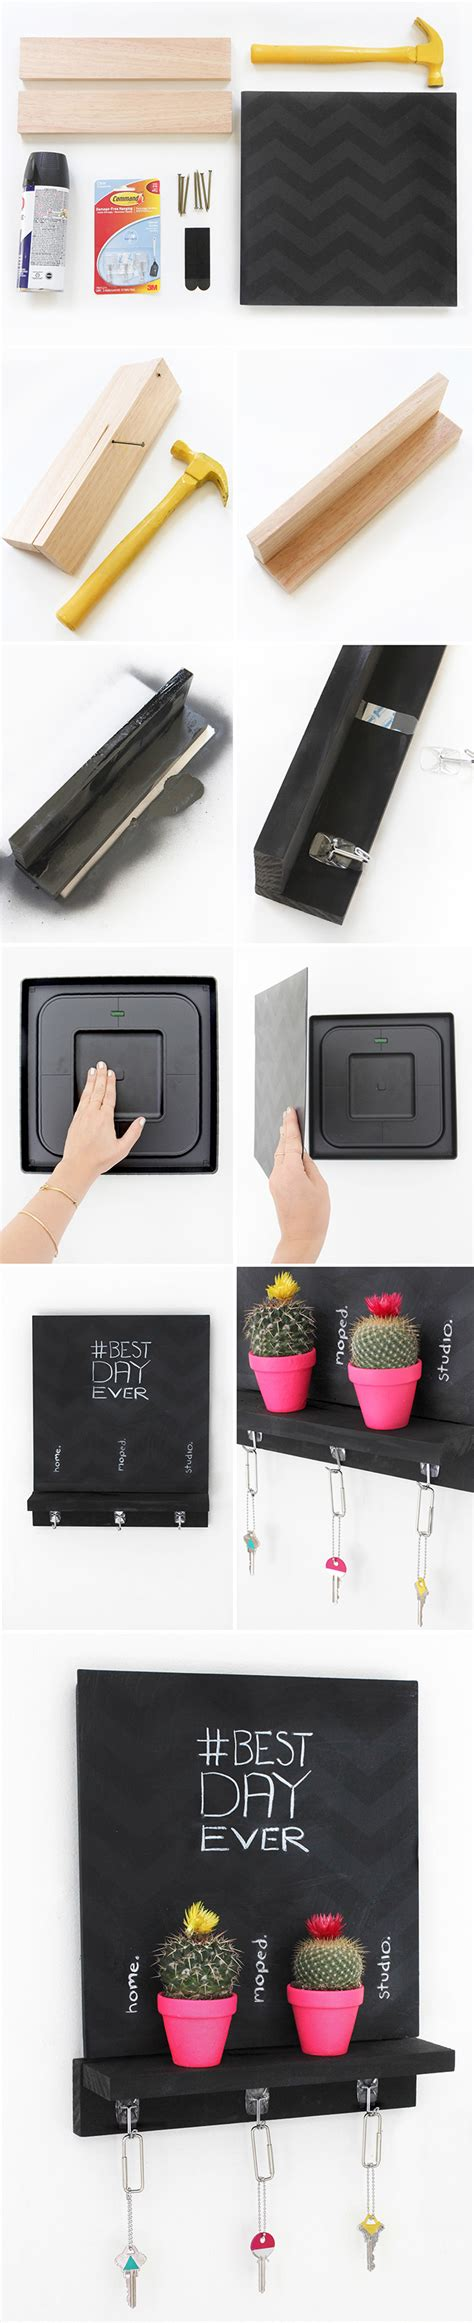 diy chalkboard holder my diy chalkboard key holder i diy bloglovin